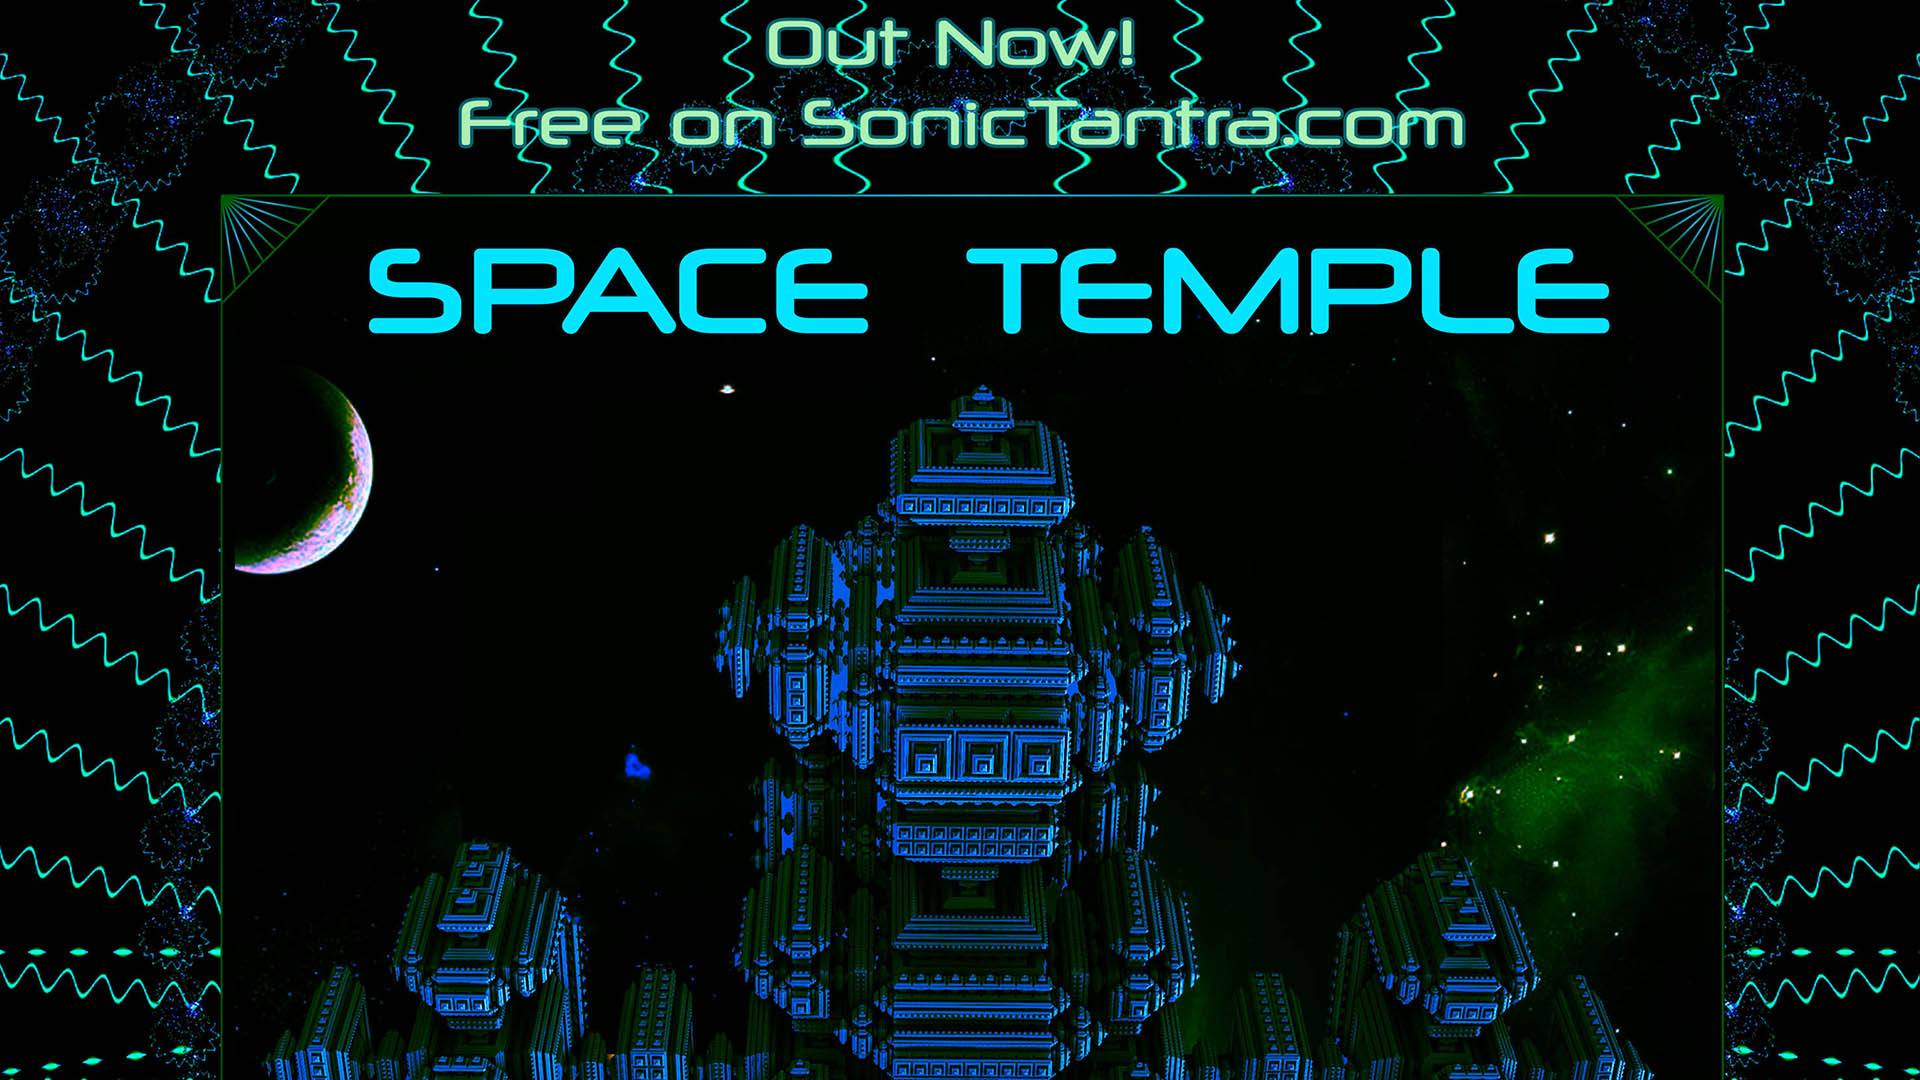 space temple - best hitech psytrance darkpsy album 2019-2020